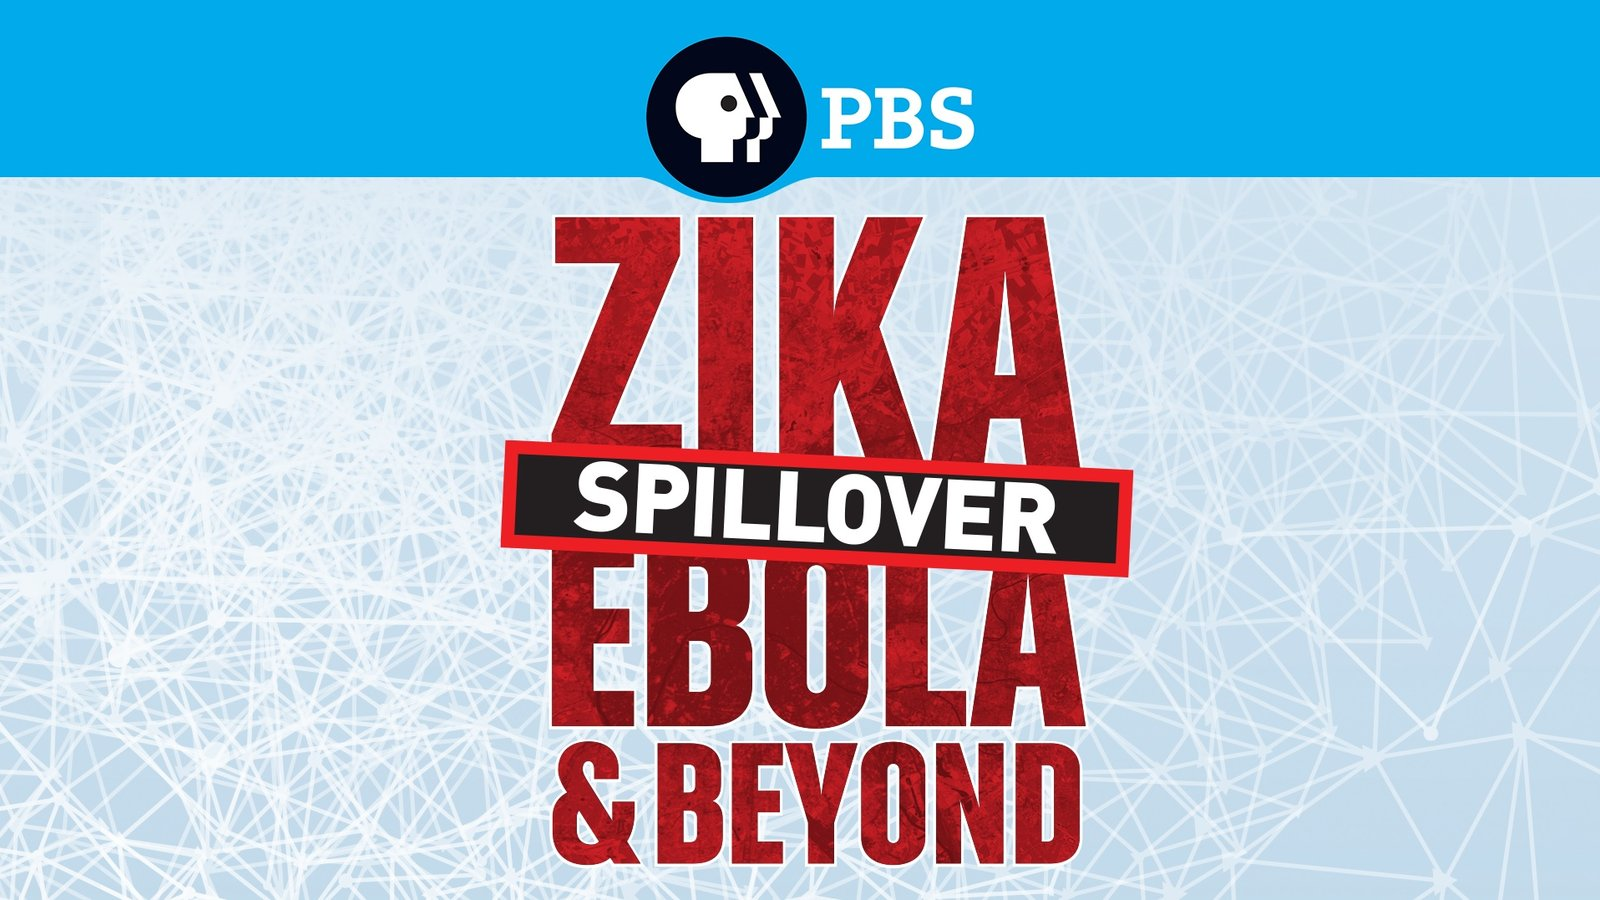 Spillover: Zika, Ebola & Beyond - Attempting to Understand and Prevent Epidemics